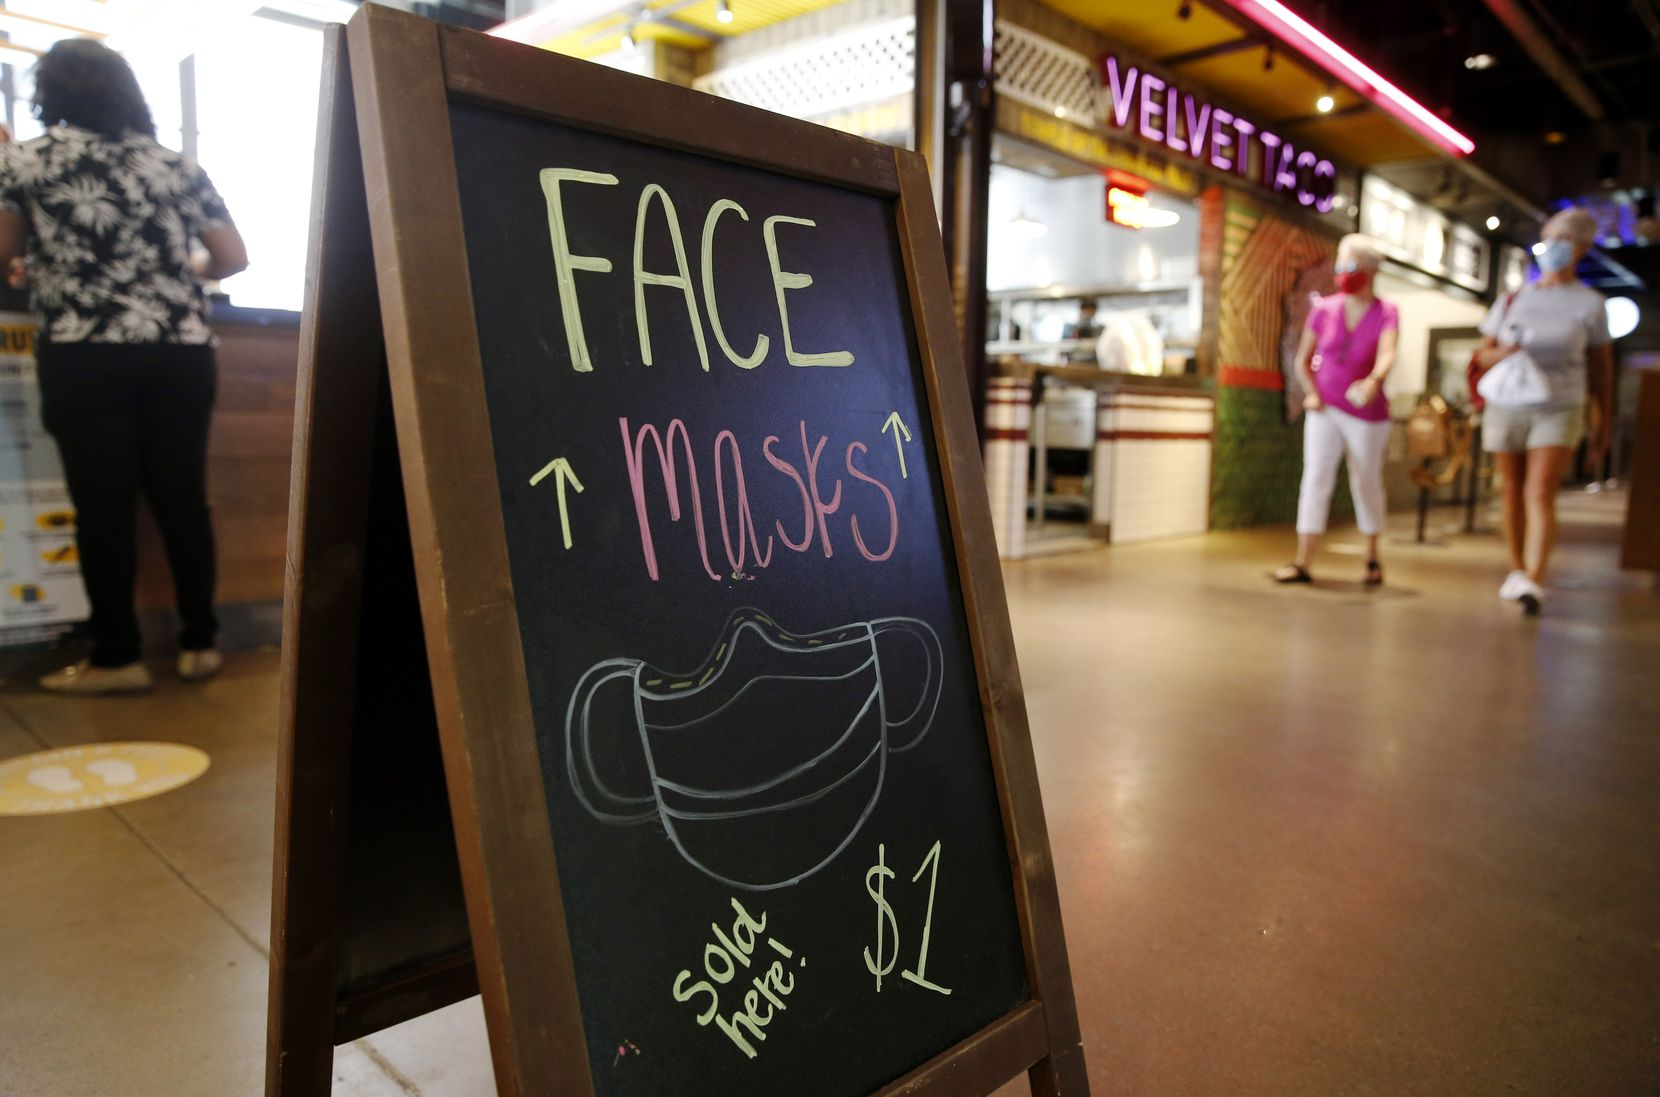 Face masks available for purchase at Legacy Food Hall in Plano.